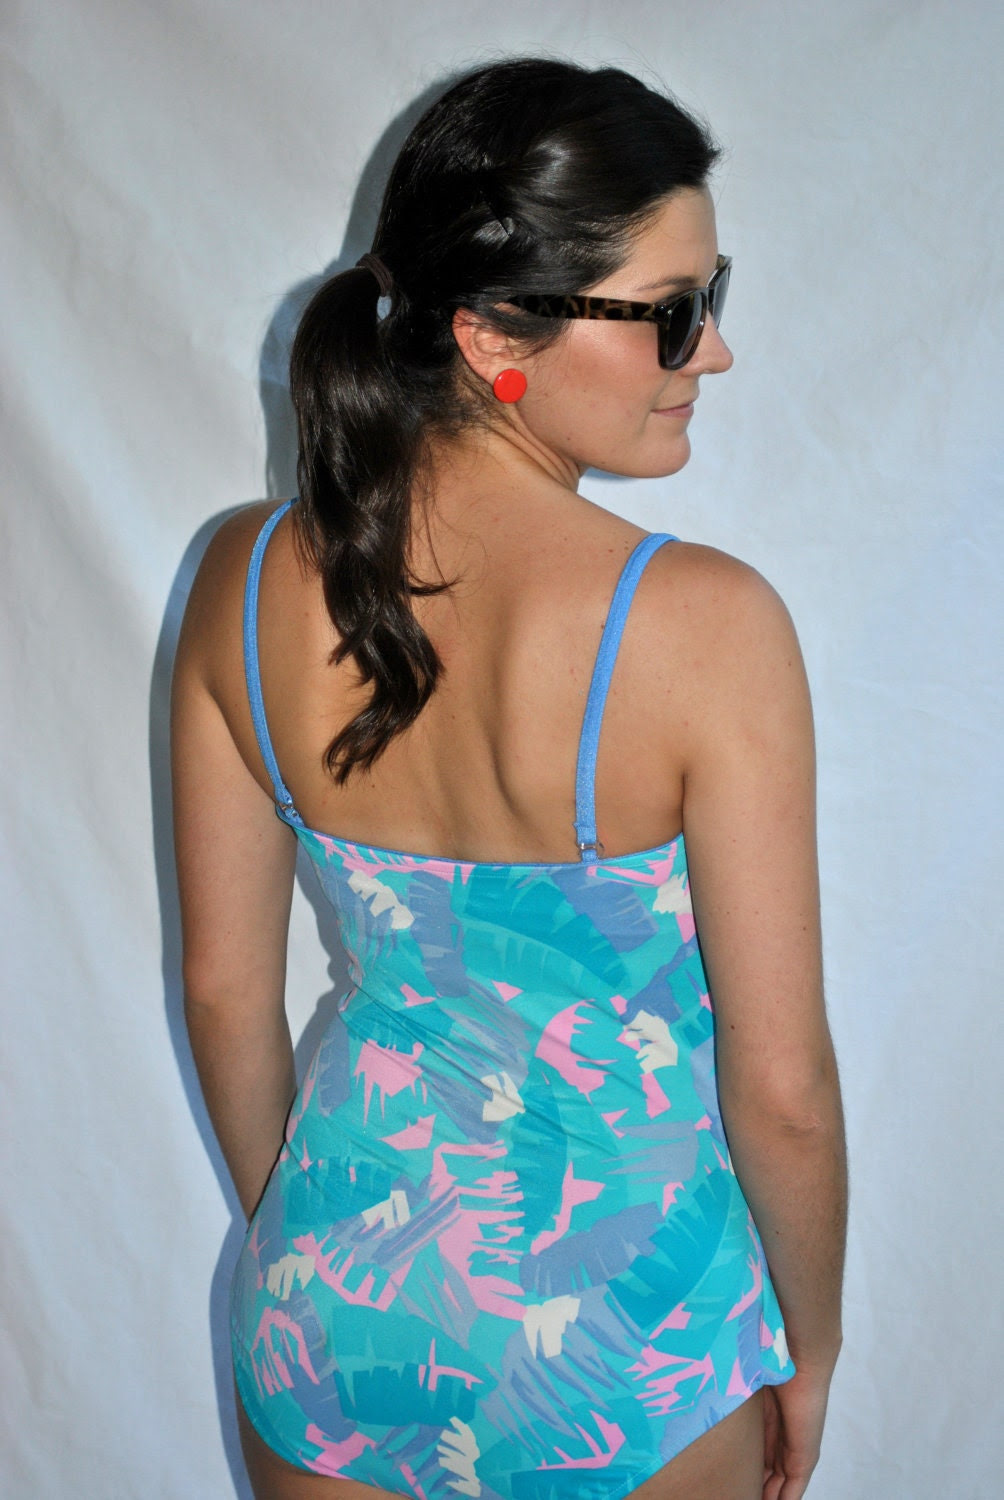 Vintage 1950s - 1960s Teal, Pink, White & Gray Swimsuit -- Vintage Swimsuit -- Vintage Bathing Suit -- Gifts for Her